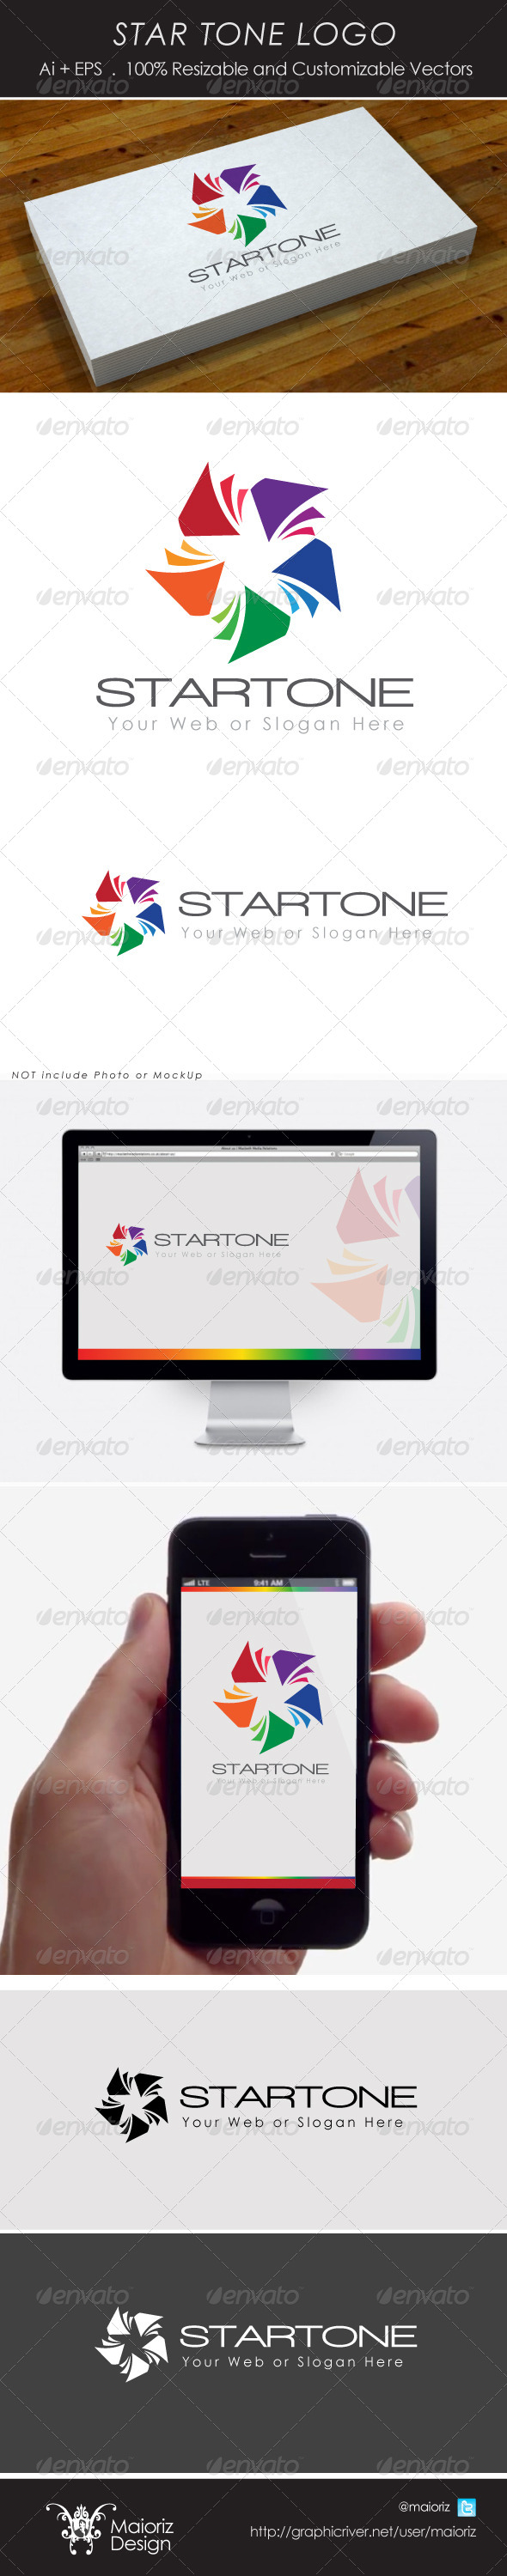 Star Tone Logotype - Vector Abstract